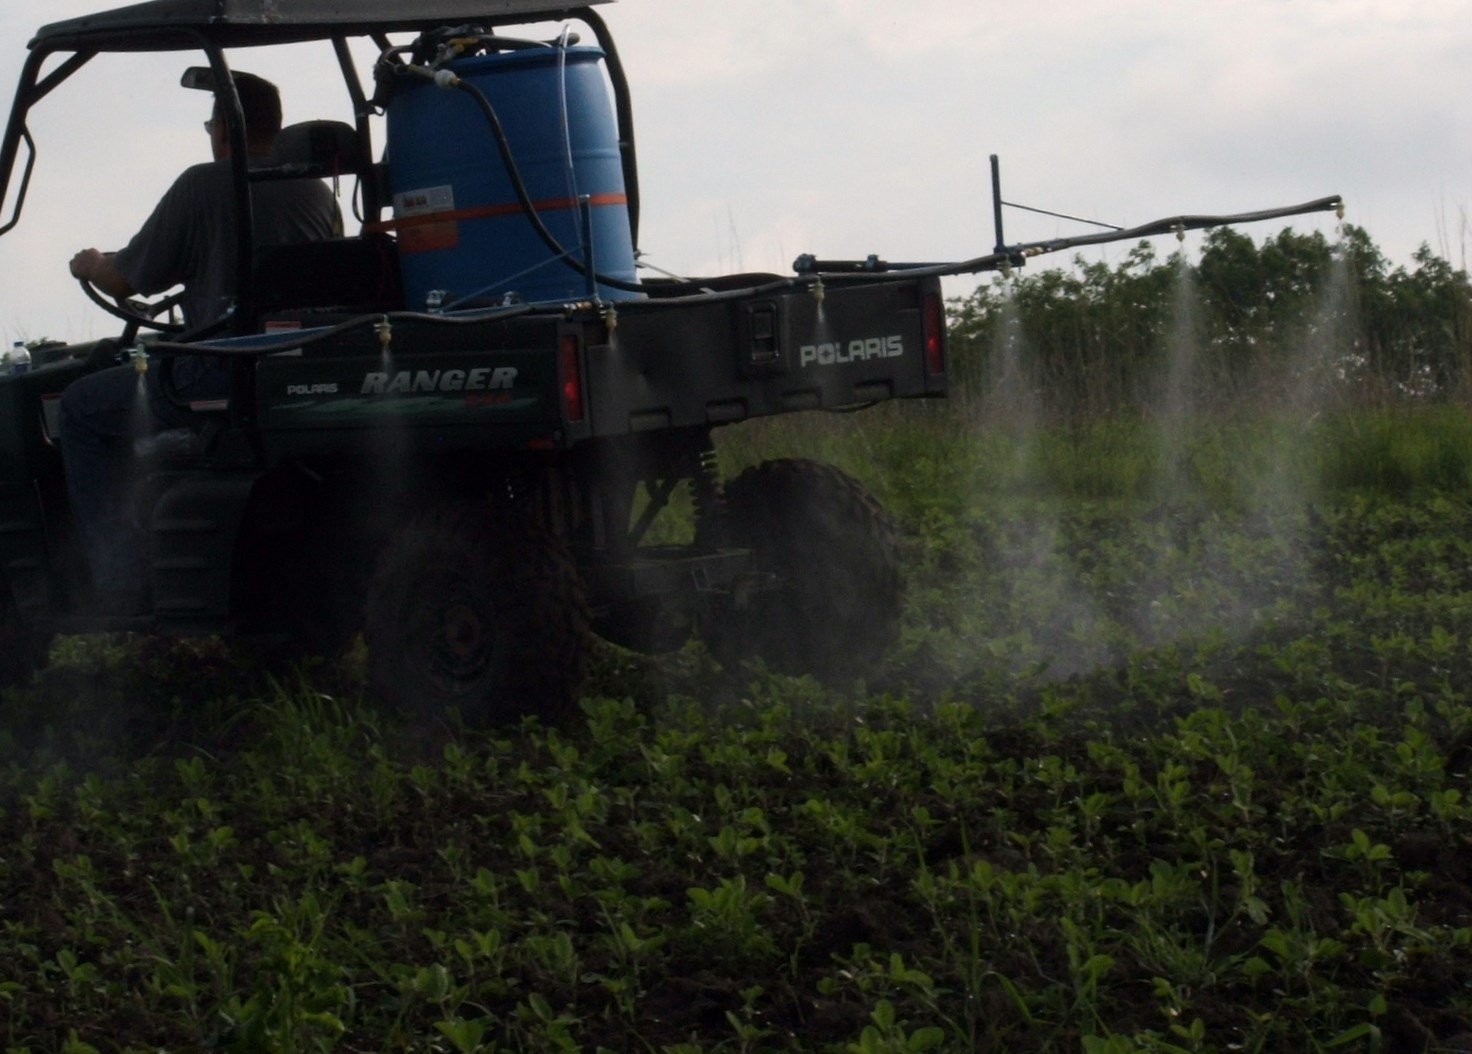 A properly calibrated sprayer can make easy work of spraying food plots.  My sprayer is set up to produce a medium mist pattern putting out 8 gallons of mixture per acre.